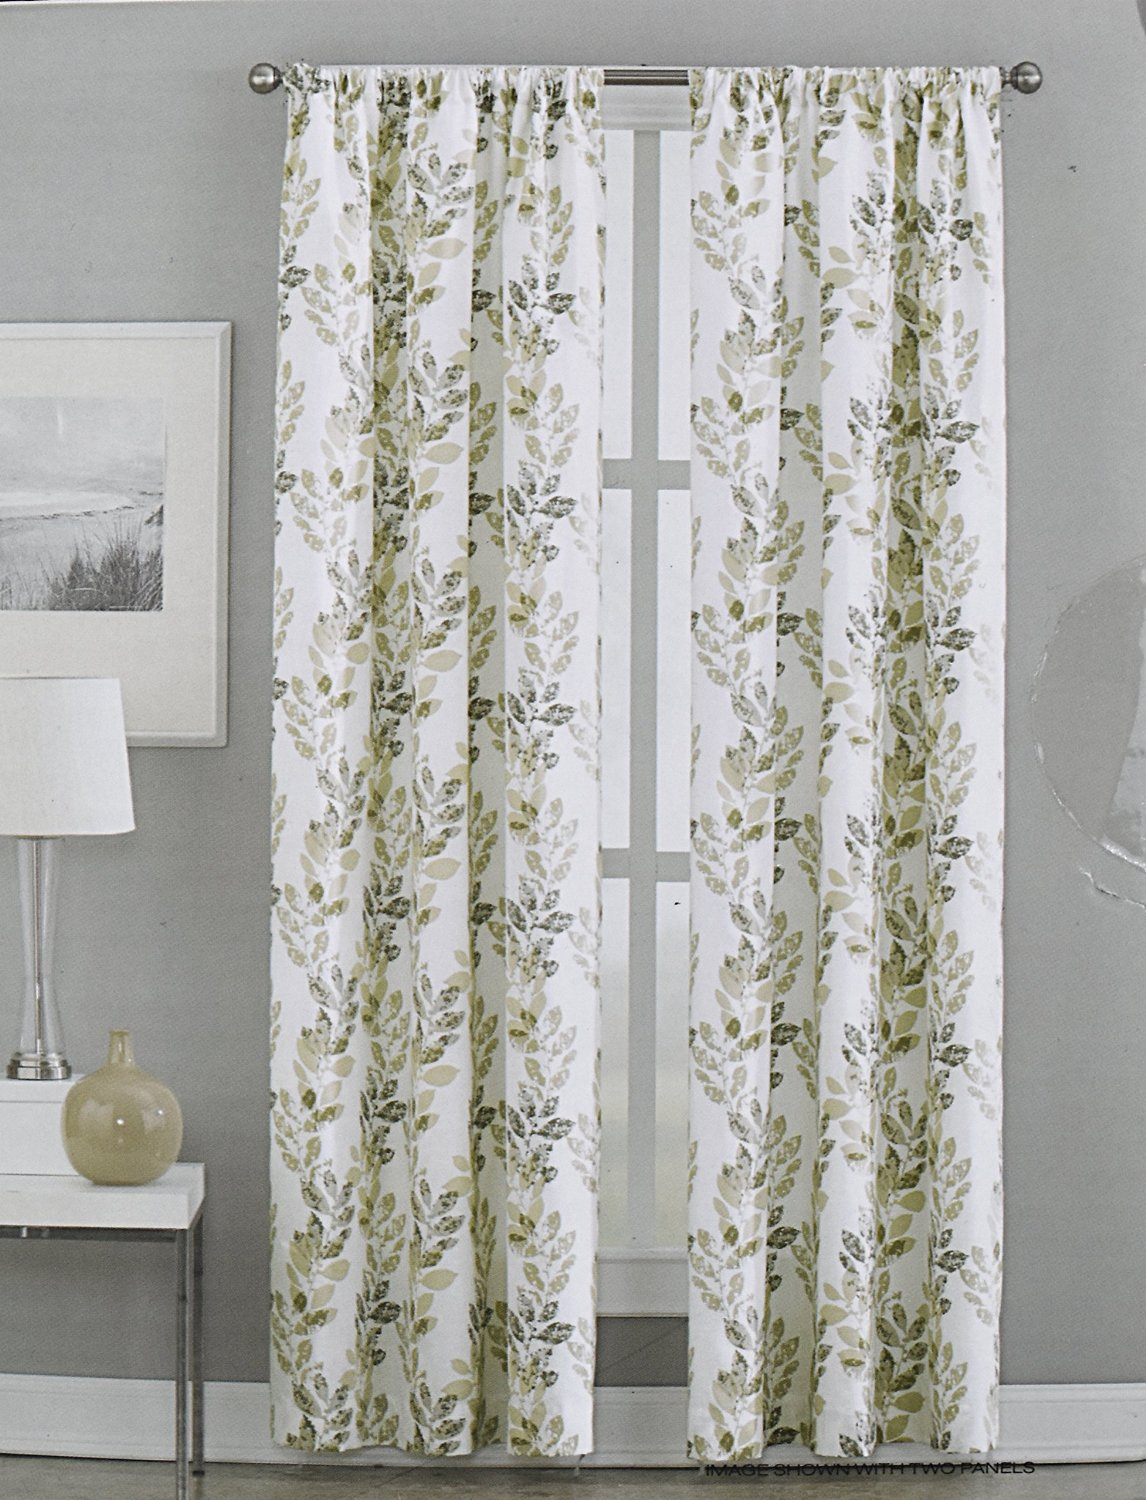 tan dkny striped curtains pocket floral inch road panels meadow taupe set city branches amazon of by cotton window beige com dp white